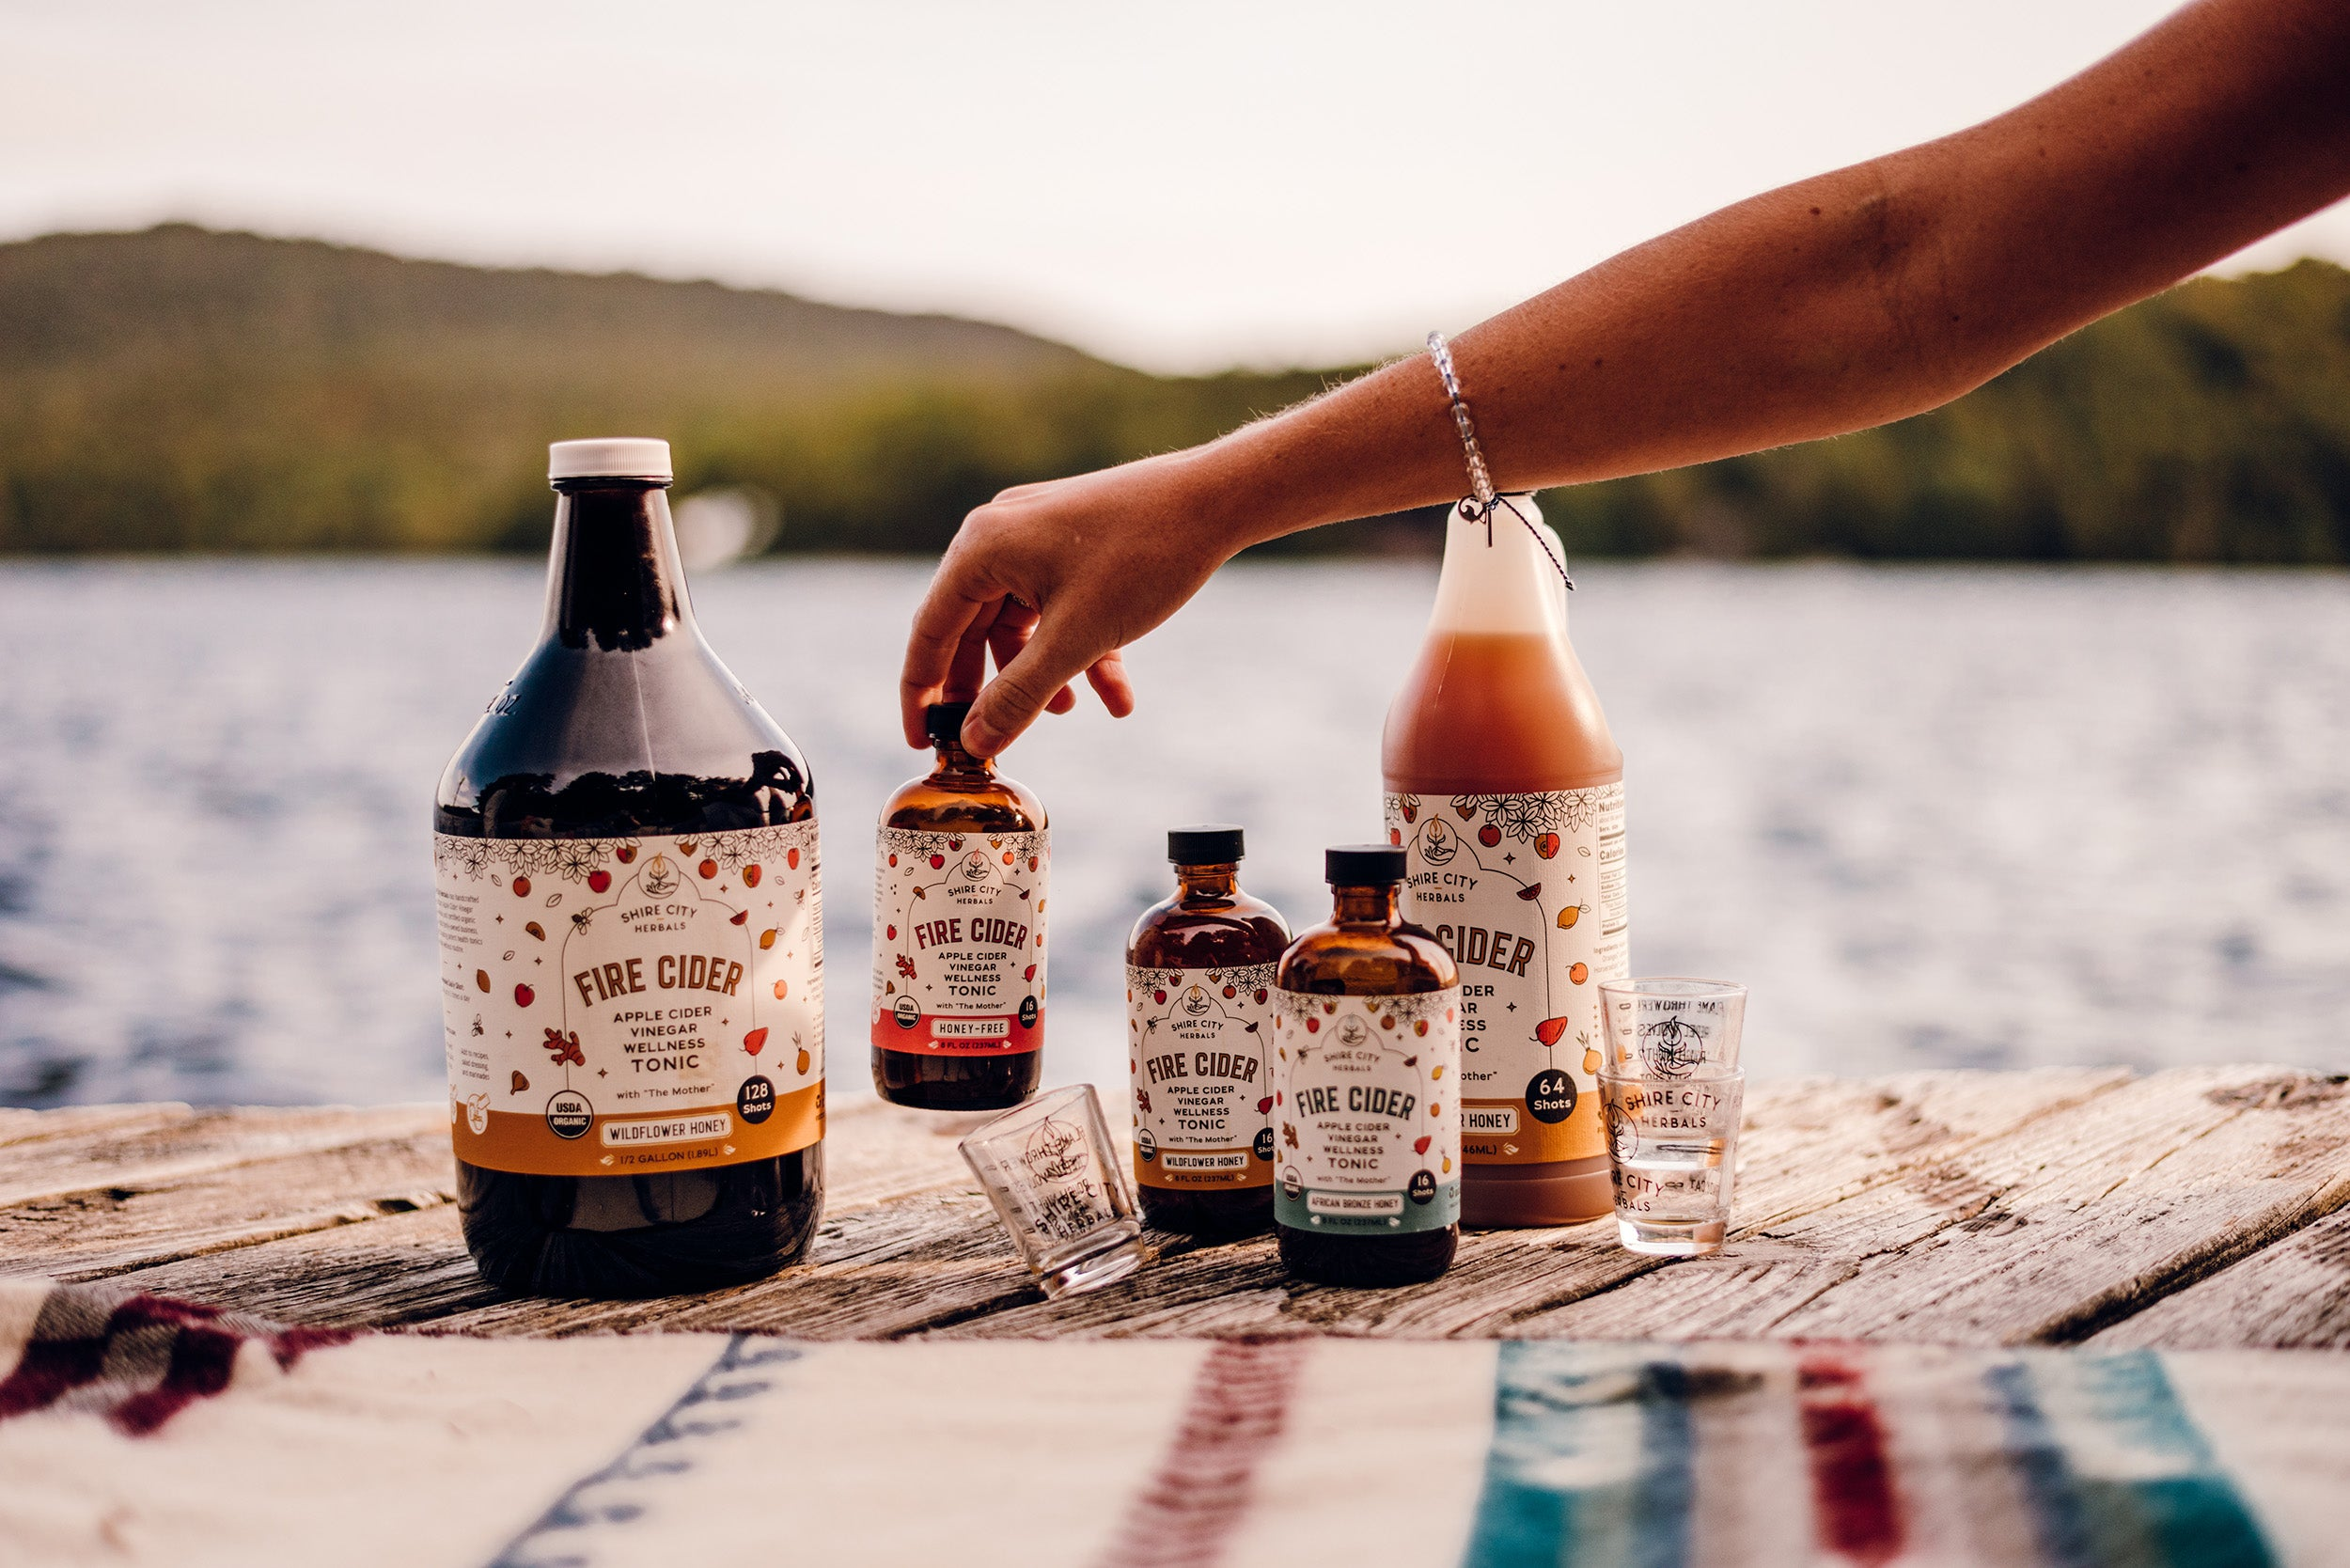 Fire Cider - full range of products for retailers